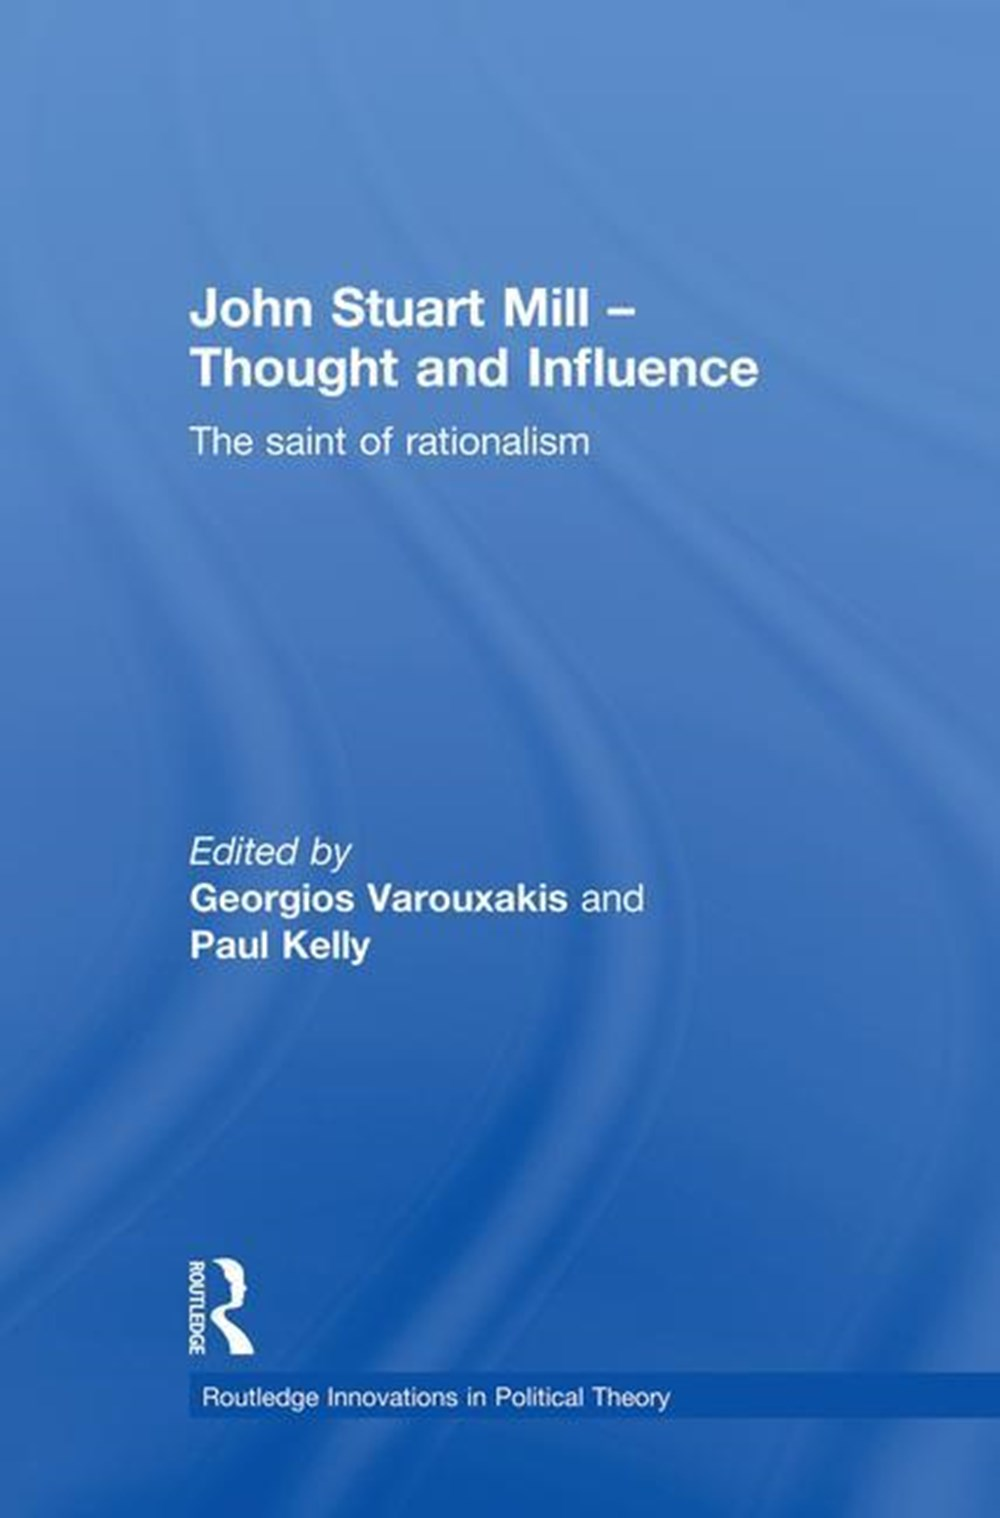 John Stuart Mill - Thought and Influence The Saint of Rationalism